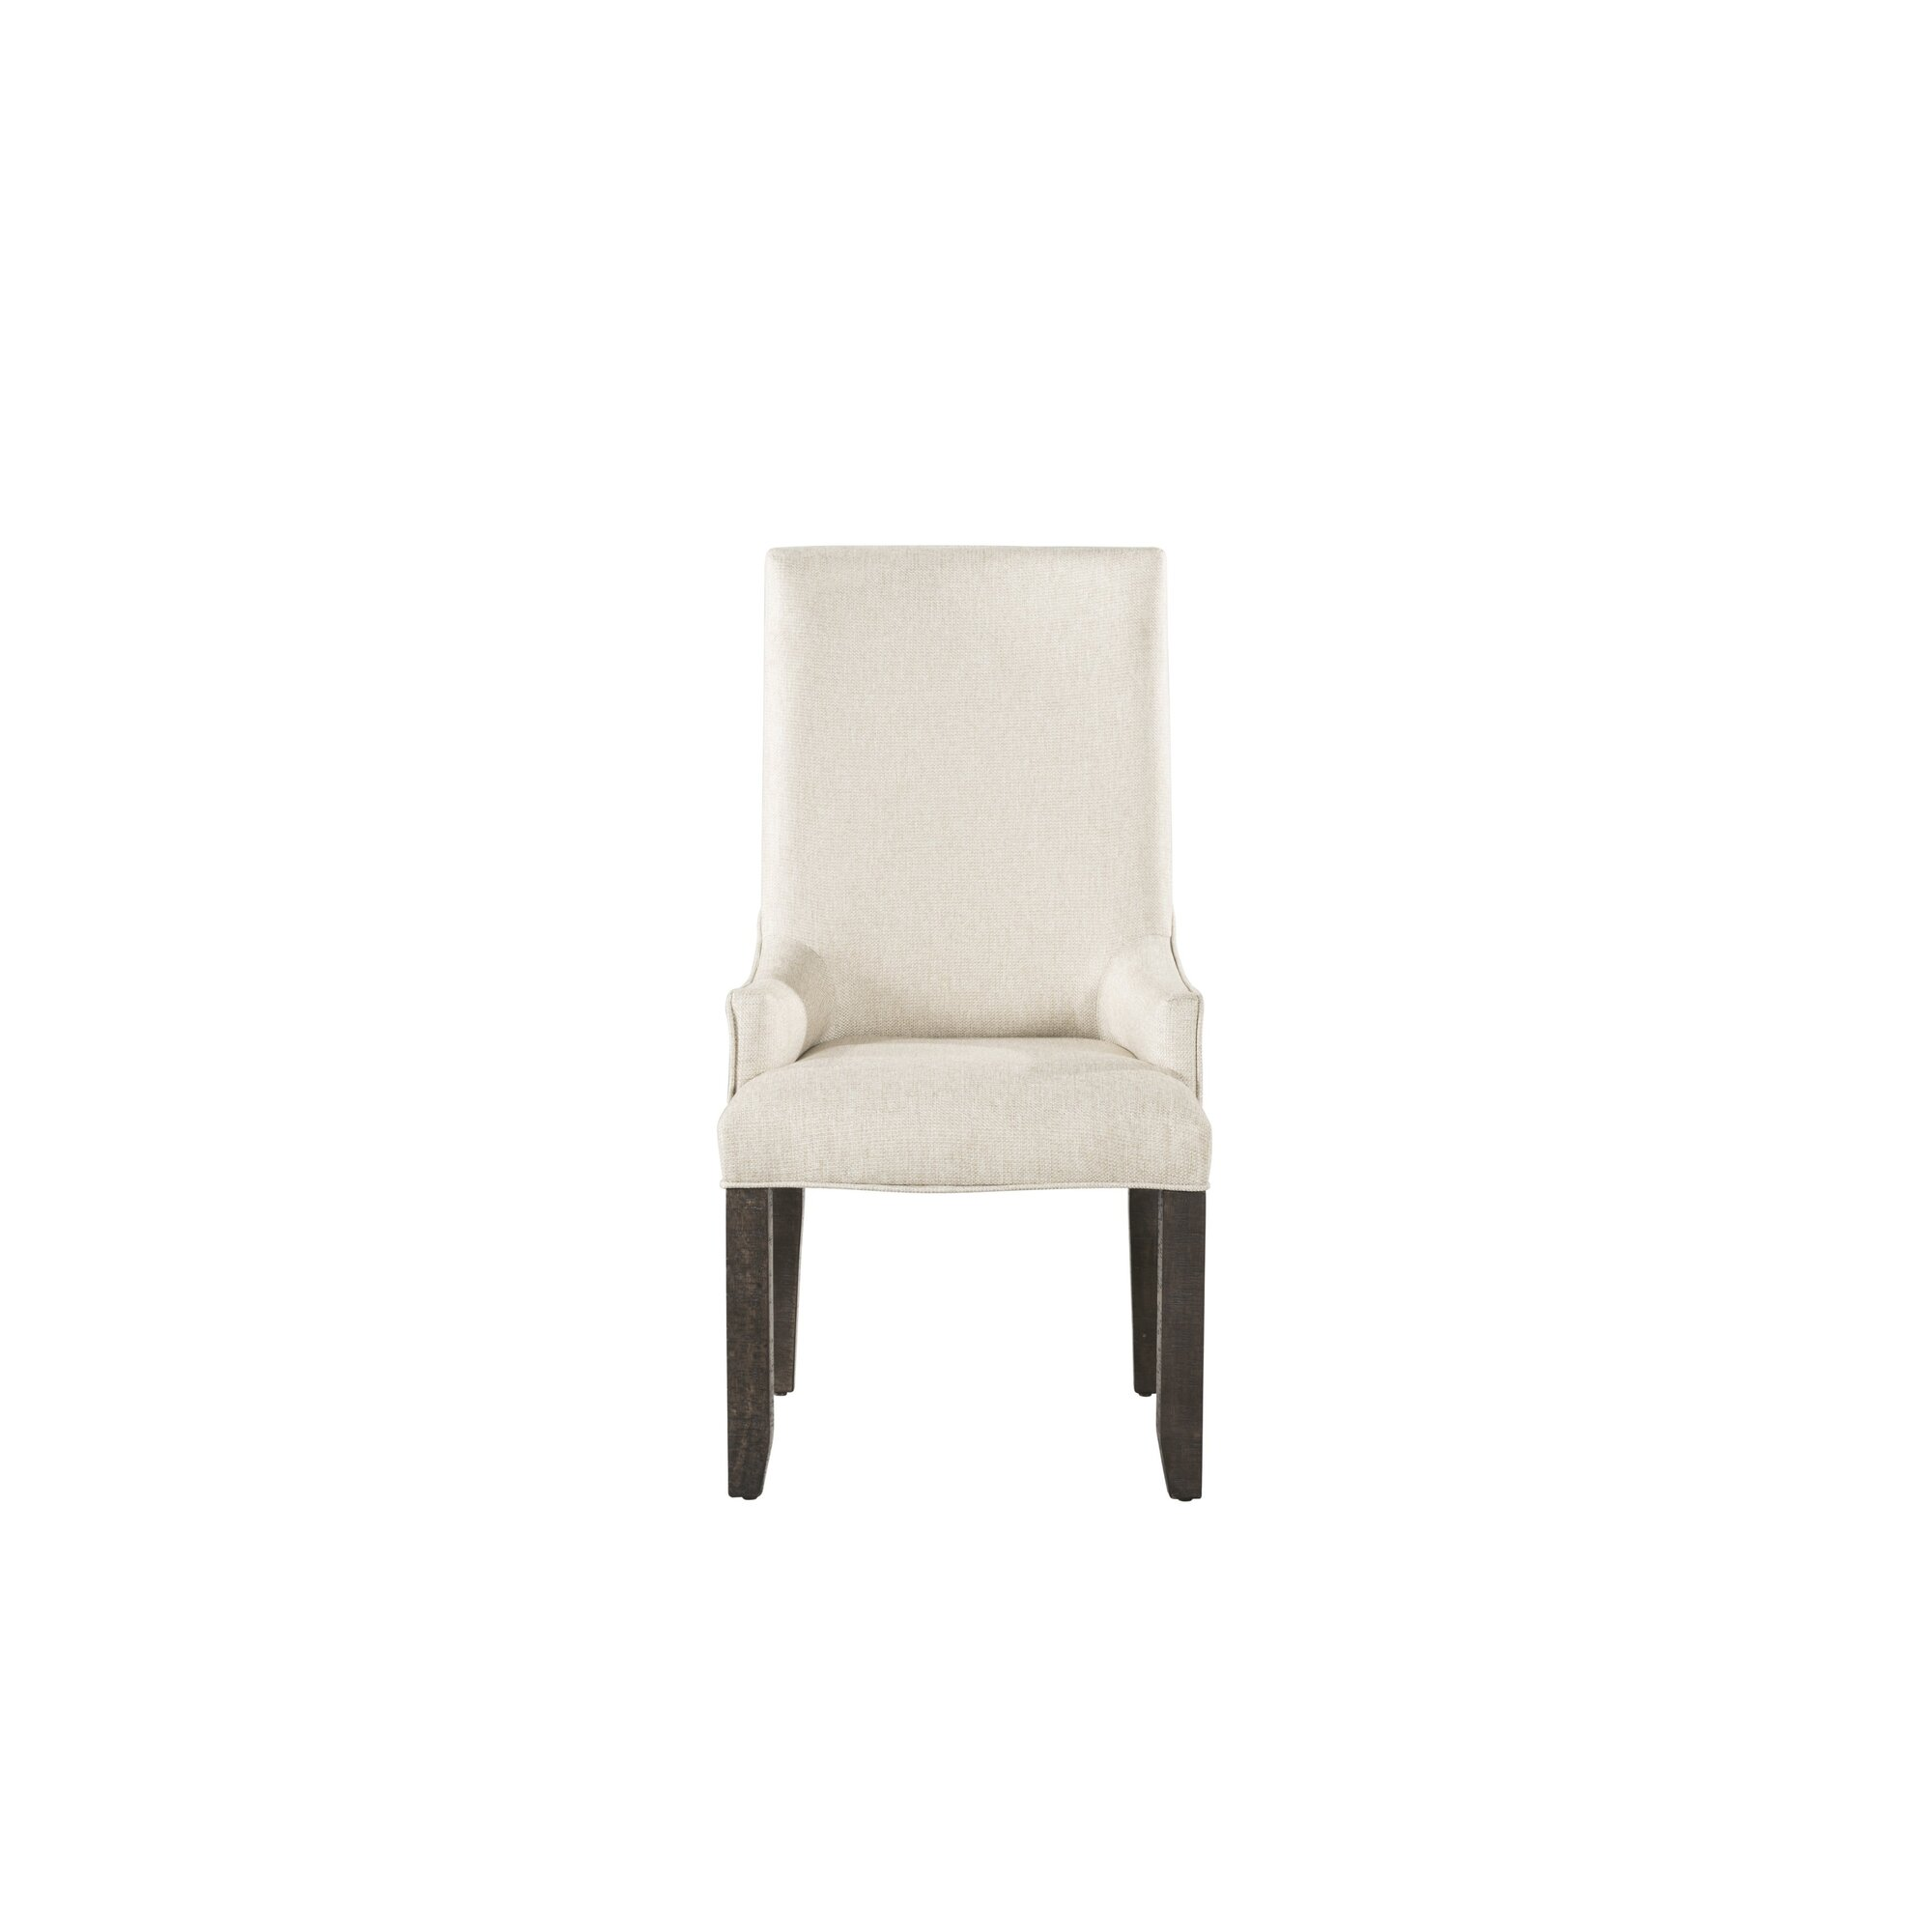 Parson chairs with skirts 187 modern home design